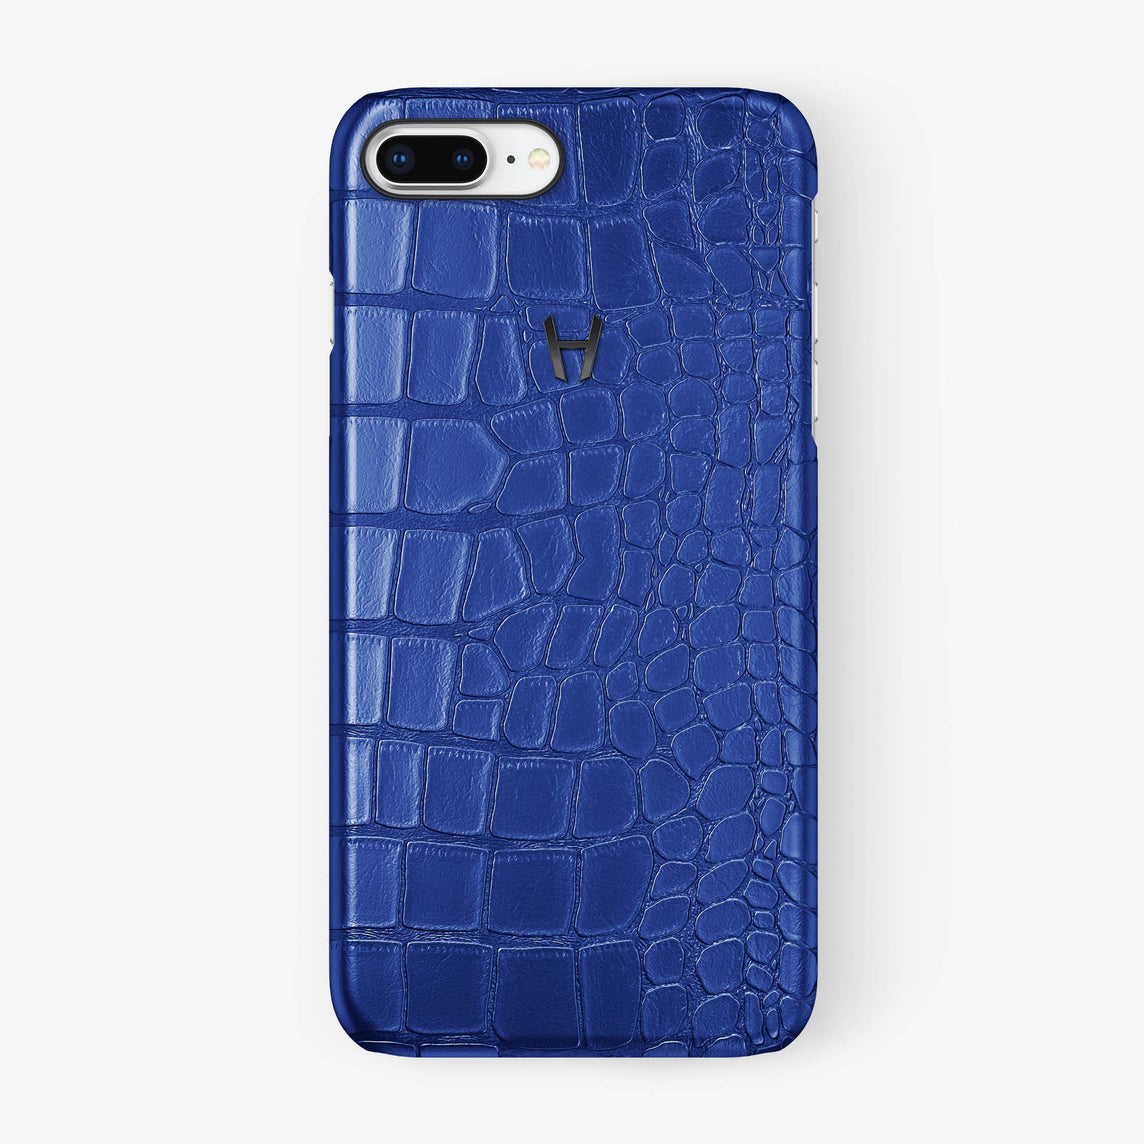 Alligator Case iPhone 7/8 Plus | Peony Blue - Black - Hadoro